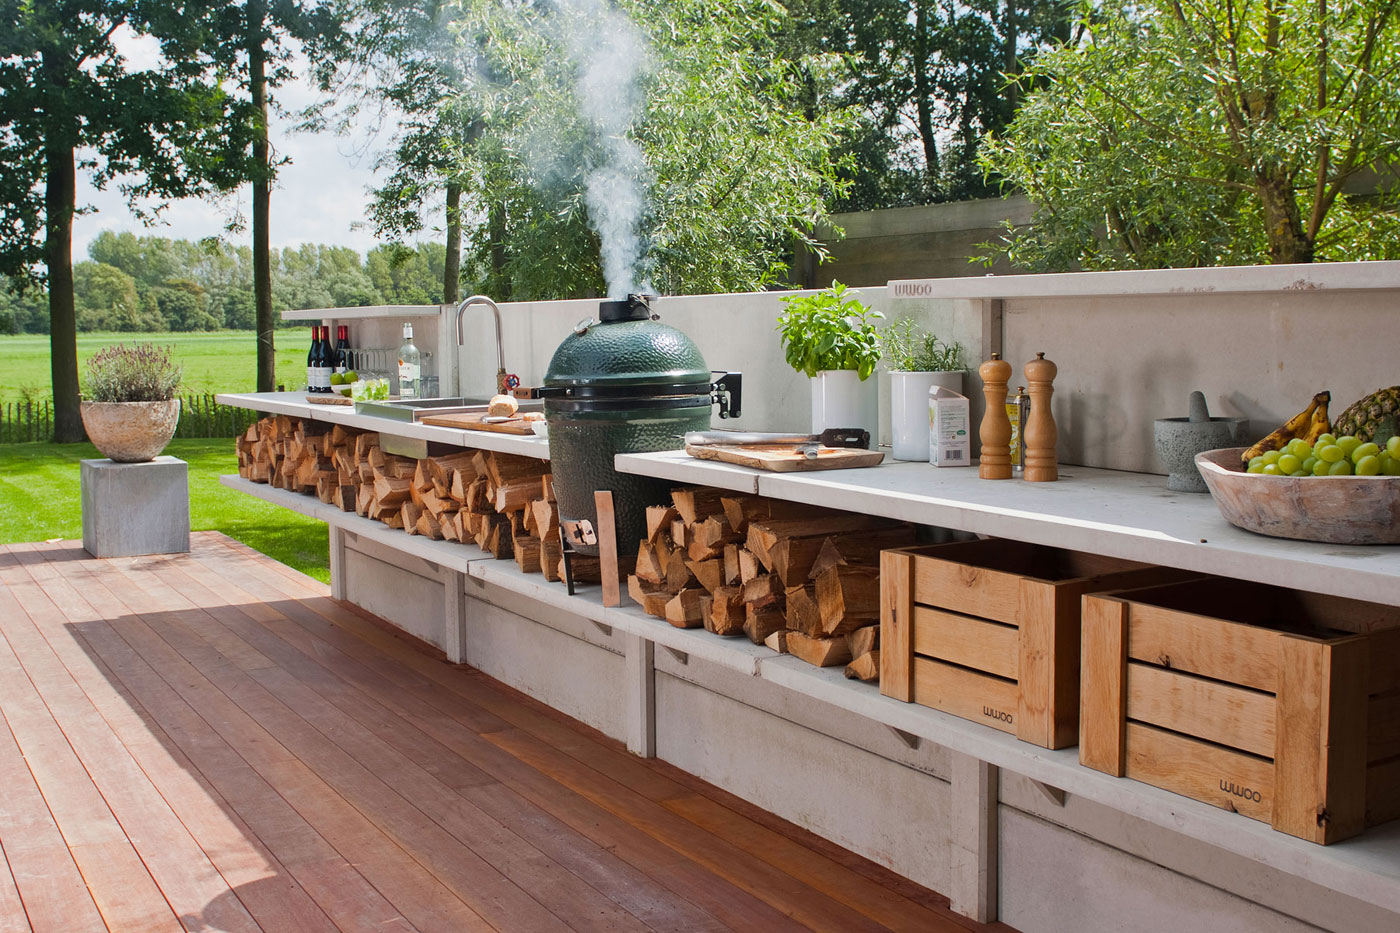 Master 15 best outdoor kitchen ideas and designs - pictures of beautiful outdoor nlxodaz